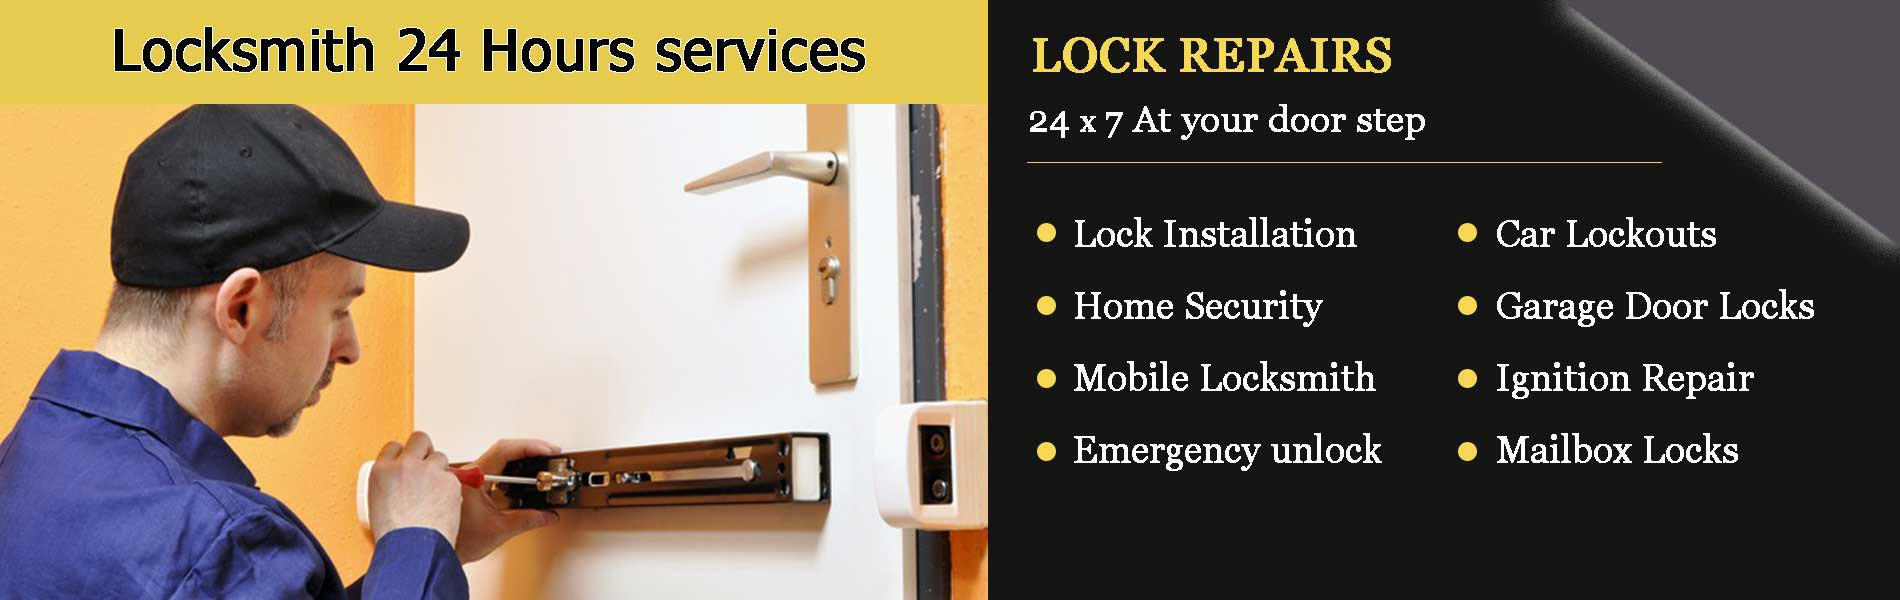 City Locksmith Store Washington, DC 202-730-2622